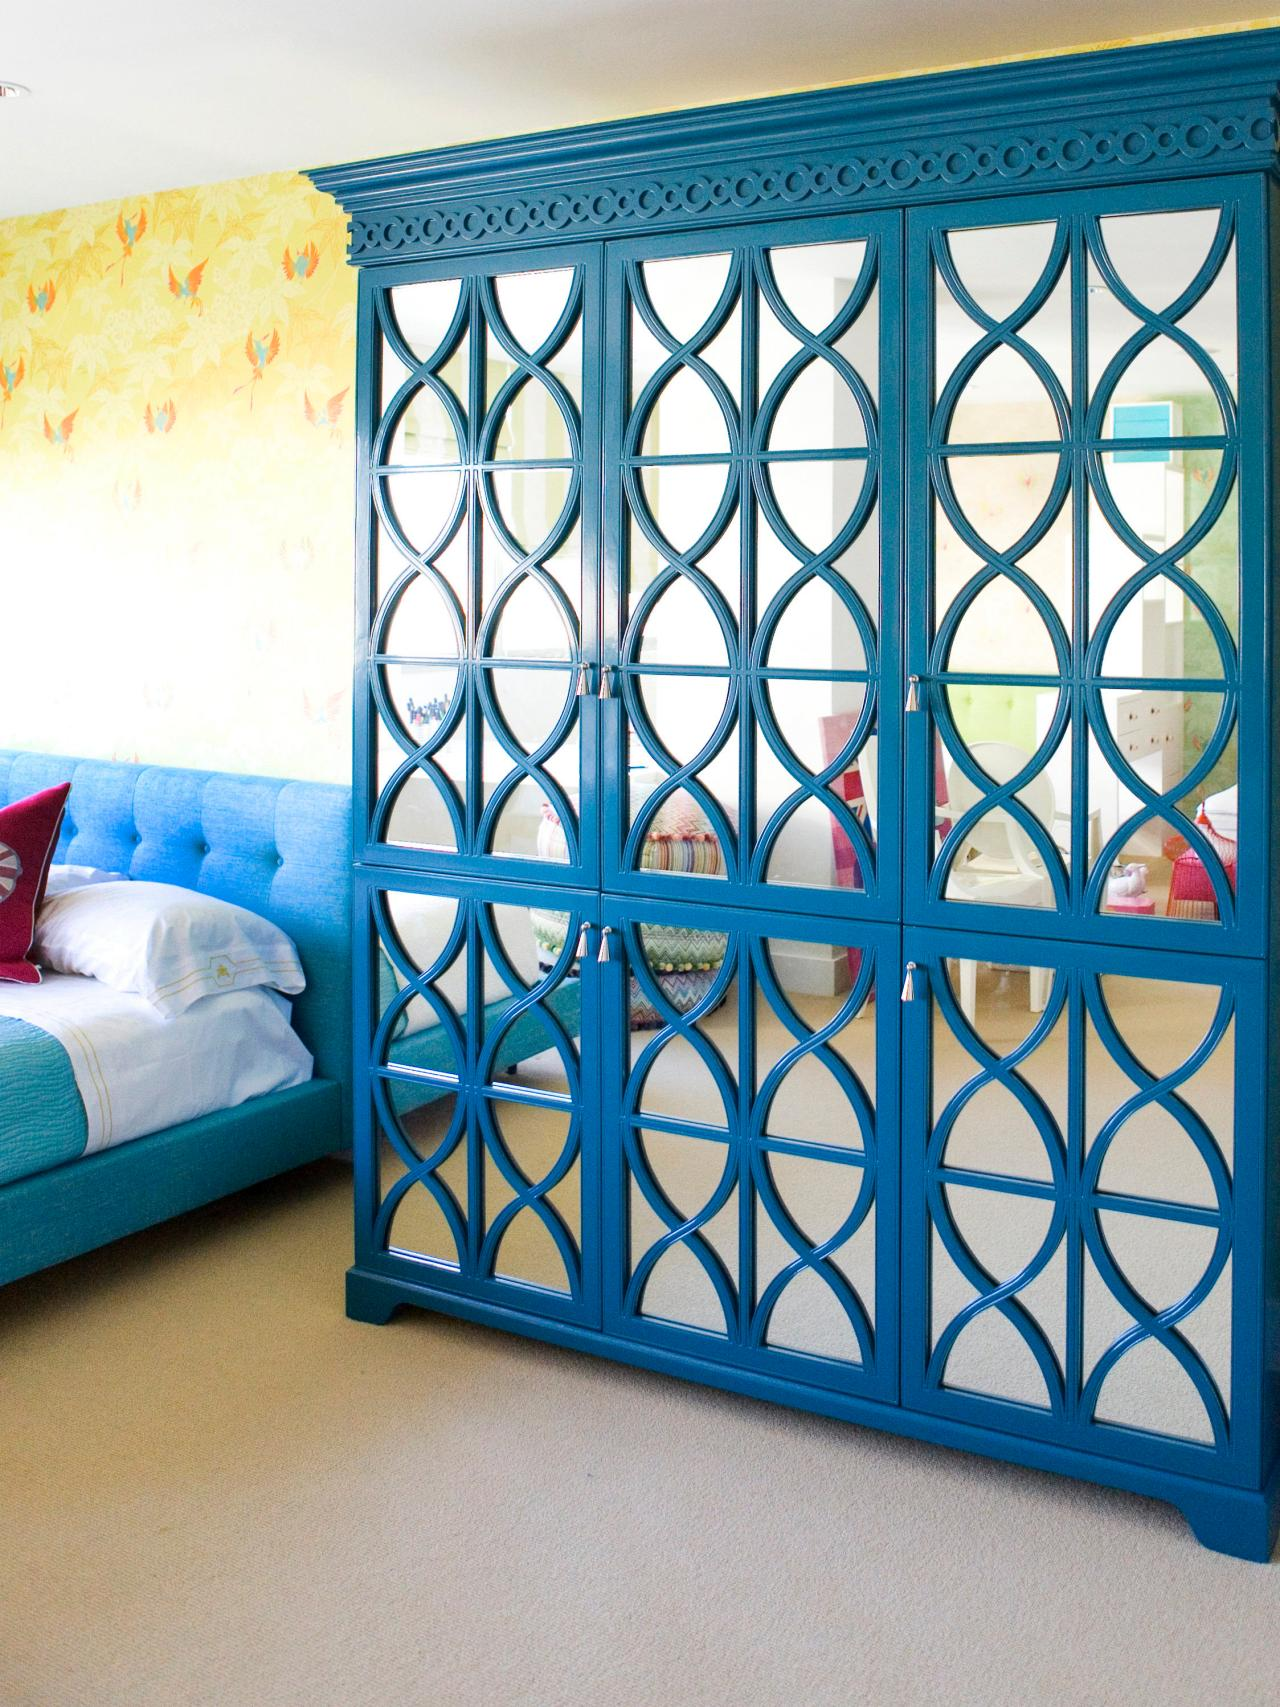 7 Small Bedroom Designs By Professional Experts: 5 Expert Bedroom Storage Ideas